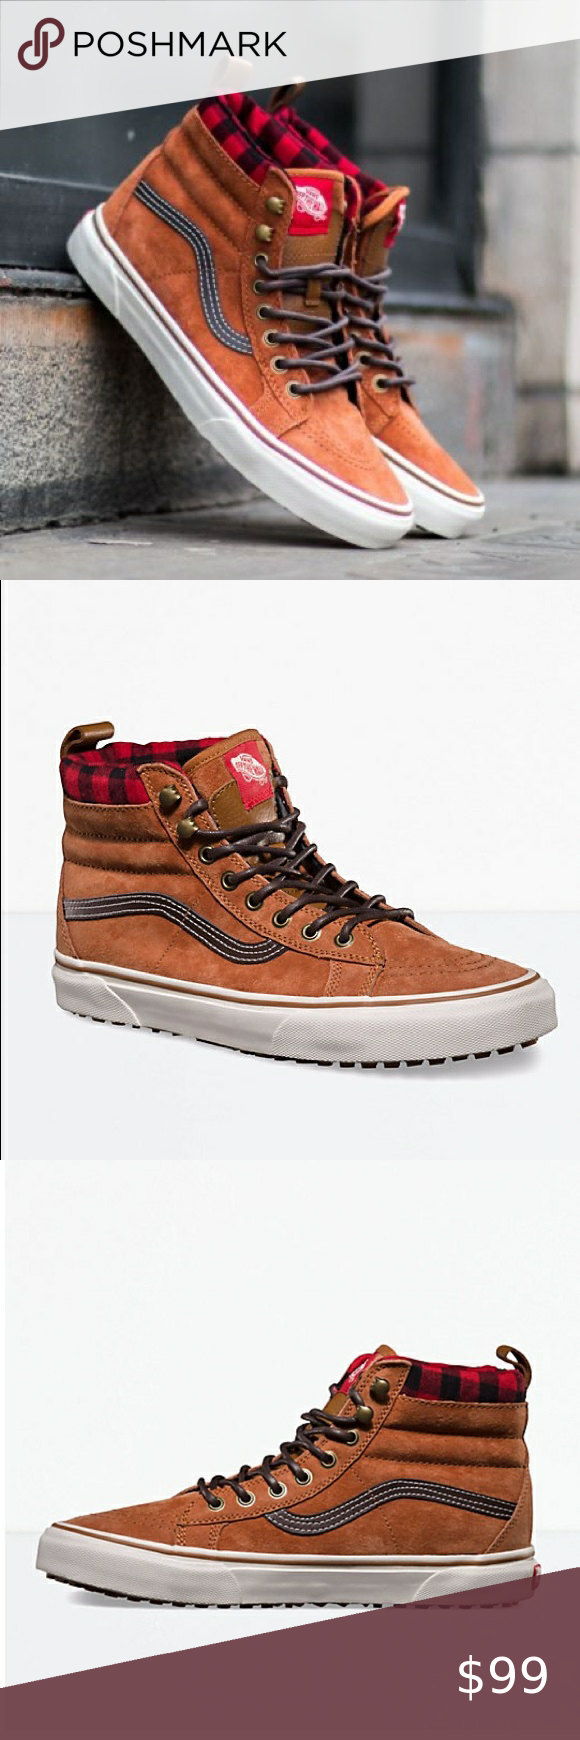 vans sk8 hi mte suede repellent skate shoes nib in 2020 skate shoes elastic laces vans sk8 pinterest